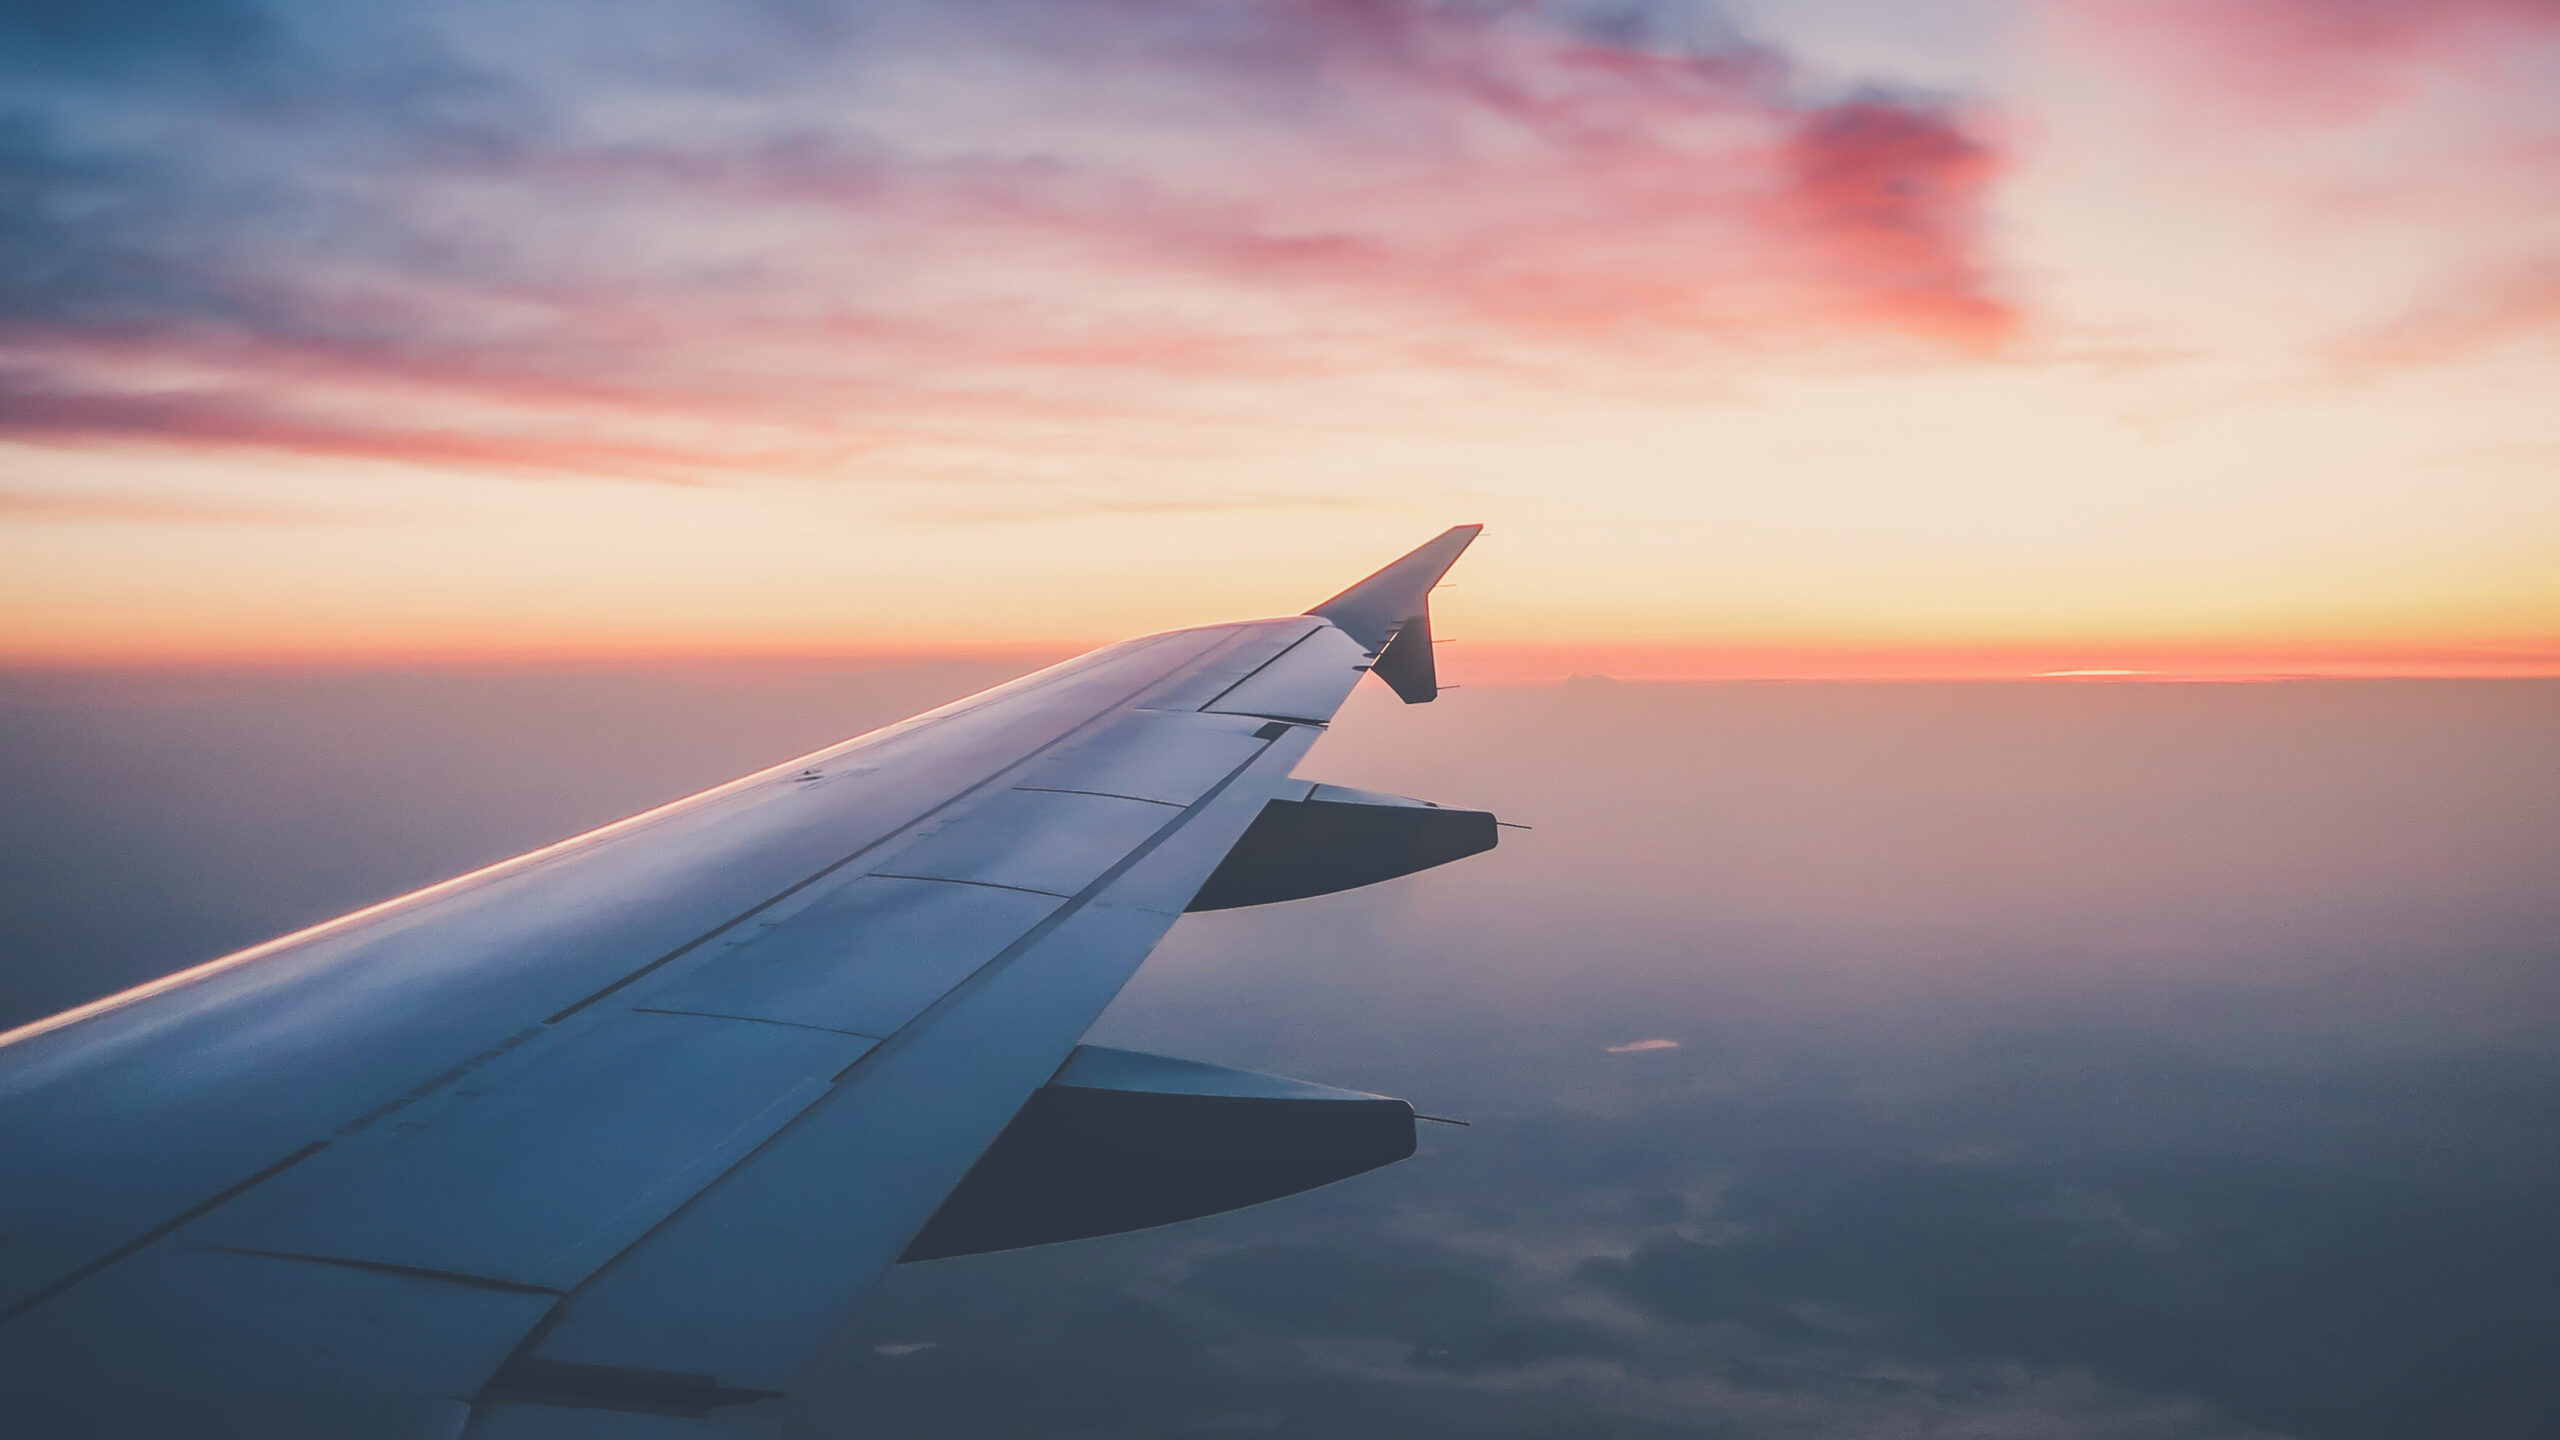 Sunset,From,Plane,With,View,Of,Wing